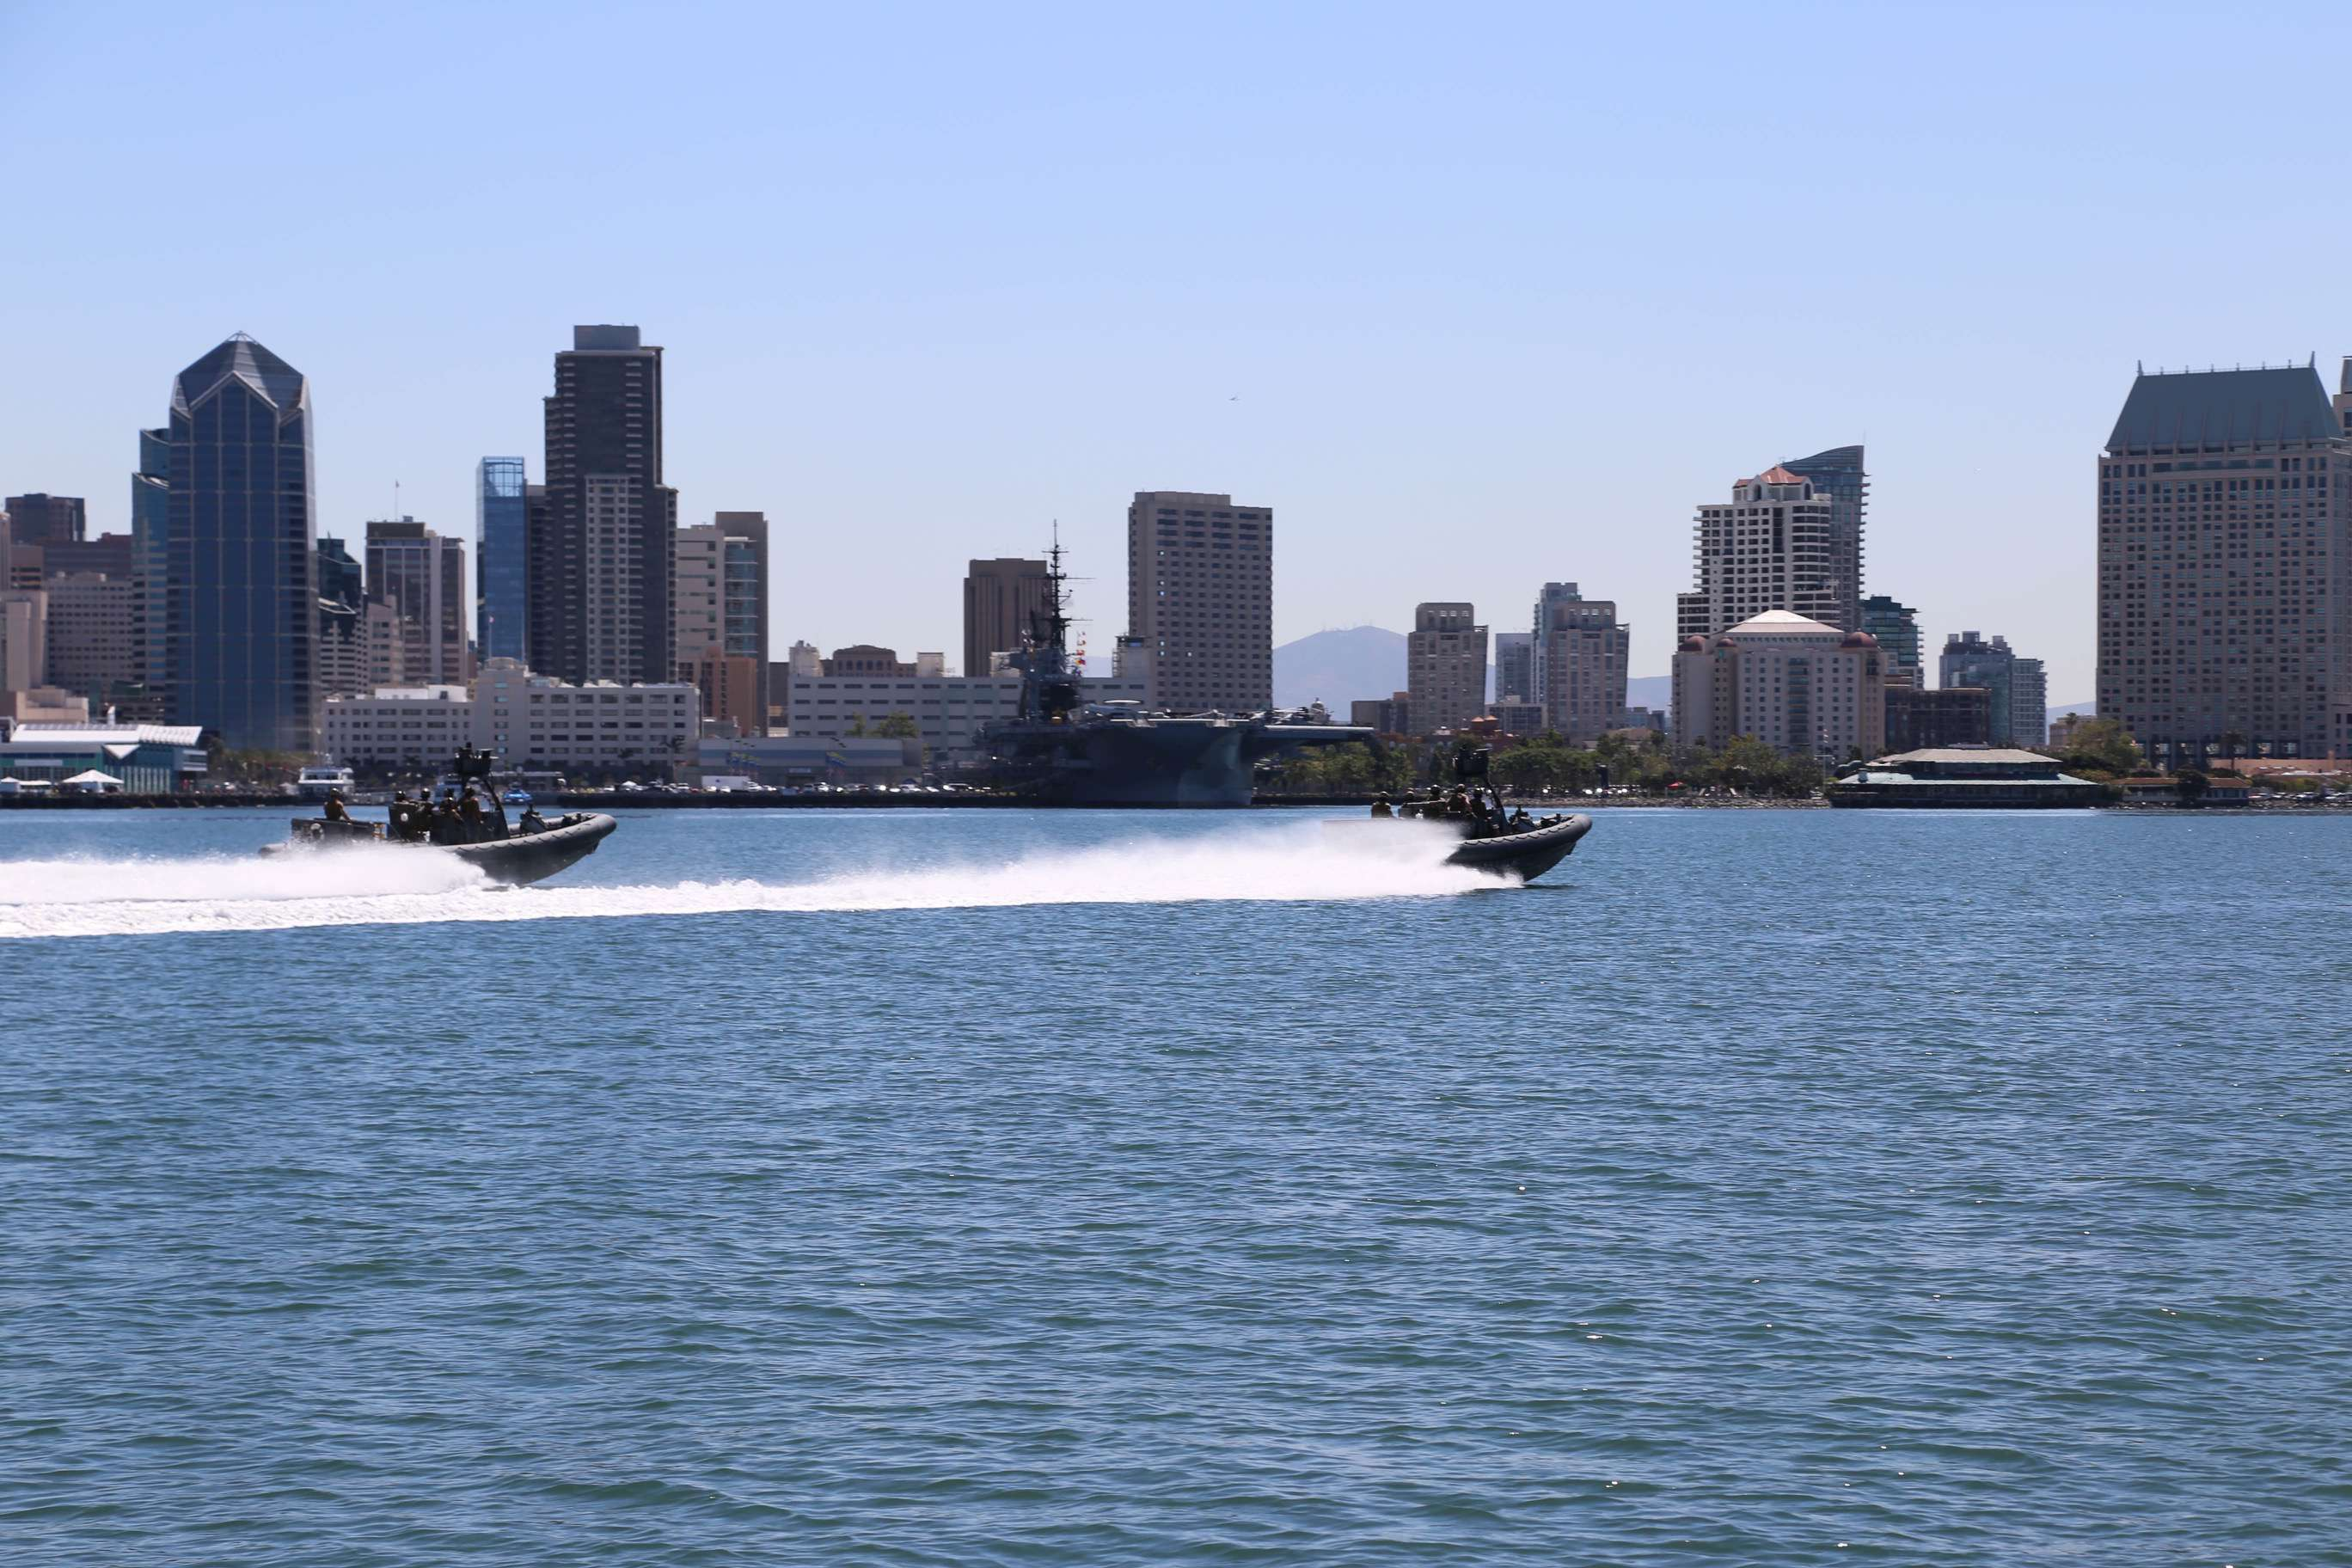 A pair of swift boats load with U.S. Navy Seals scoots past the San Diego harbor.